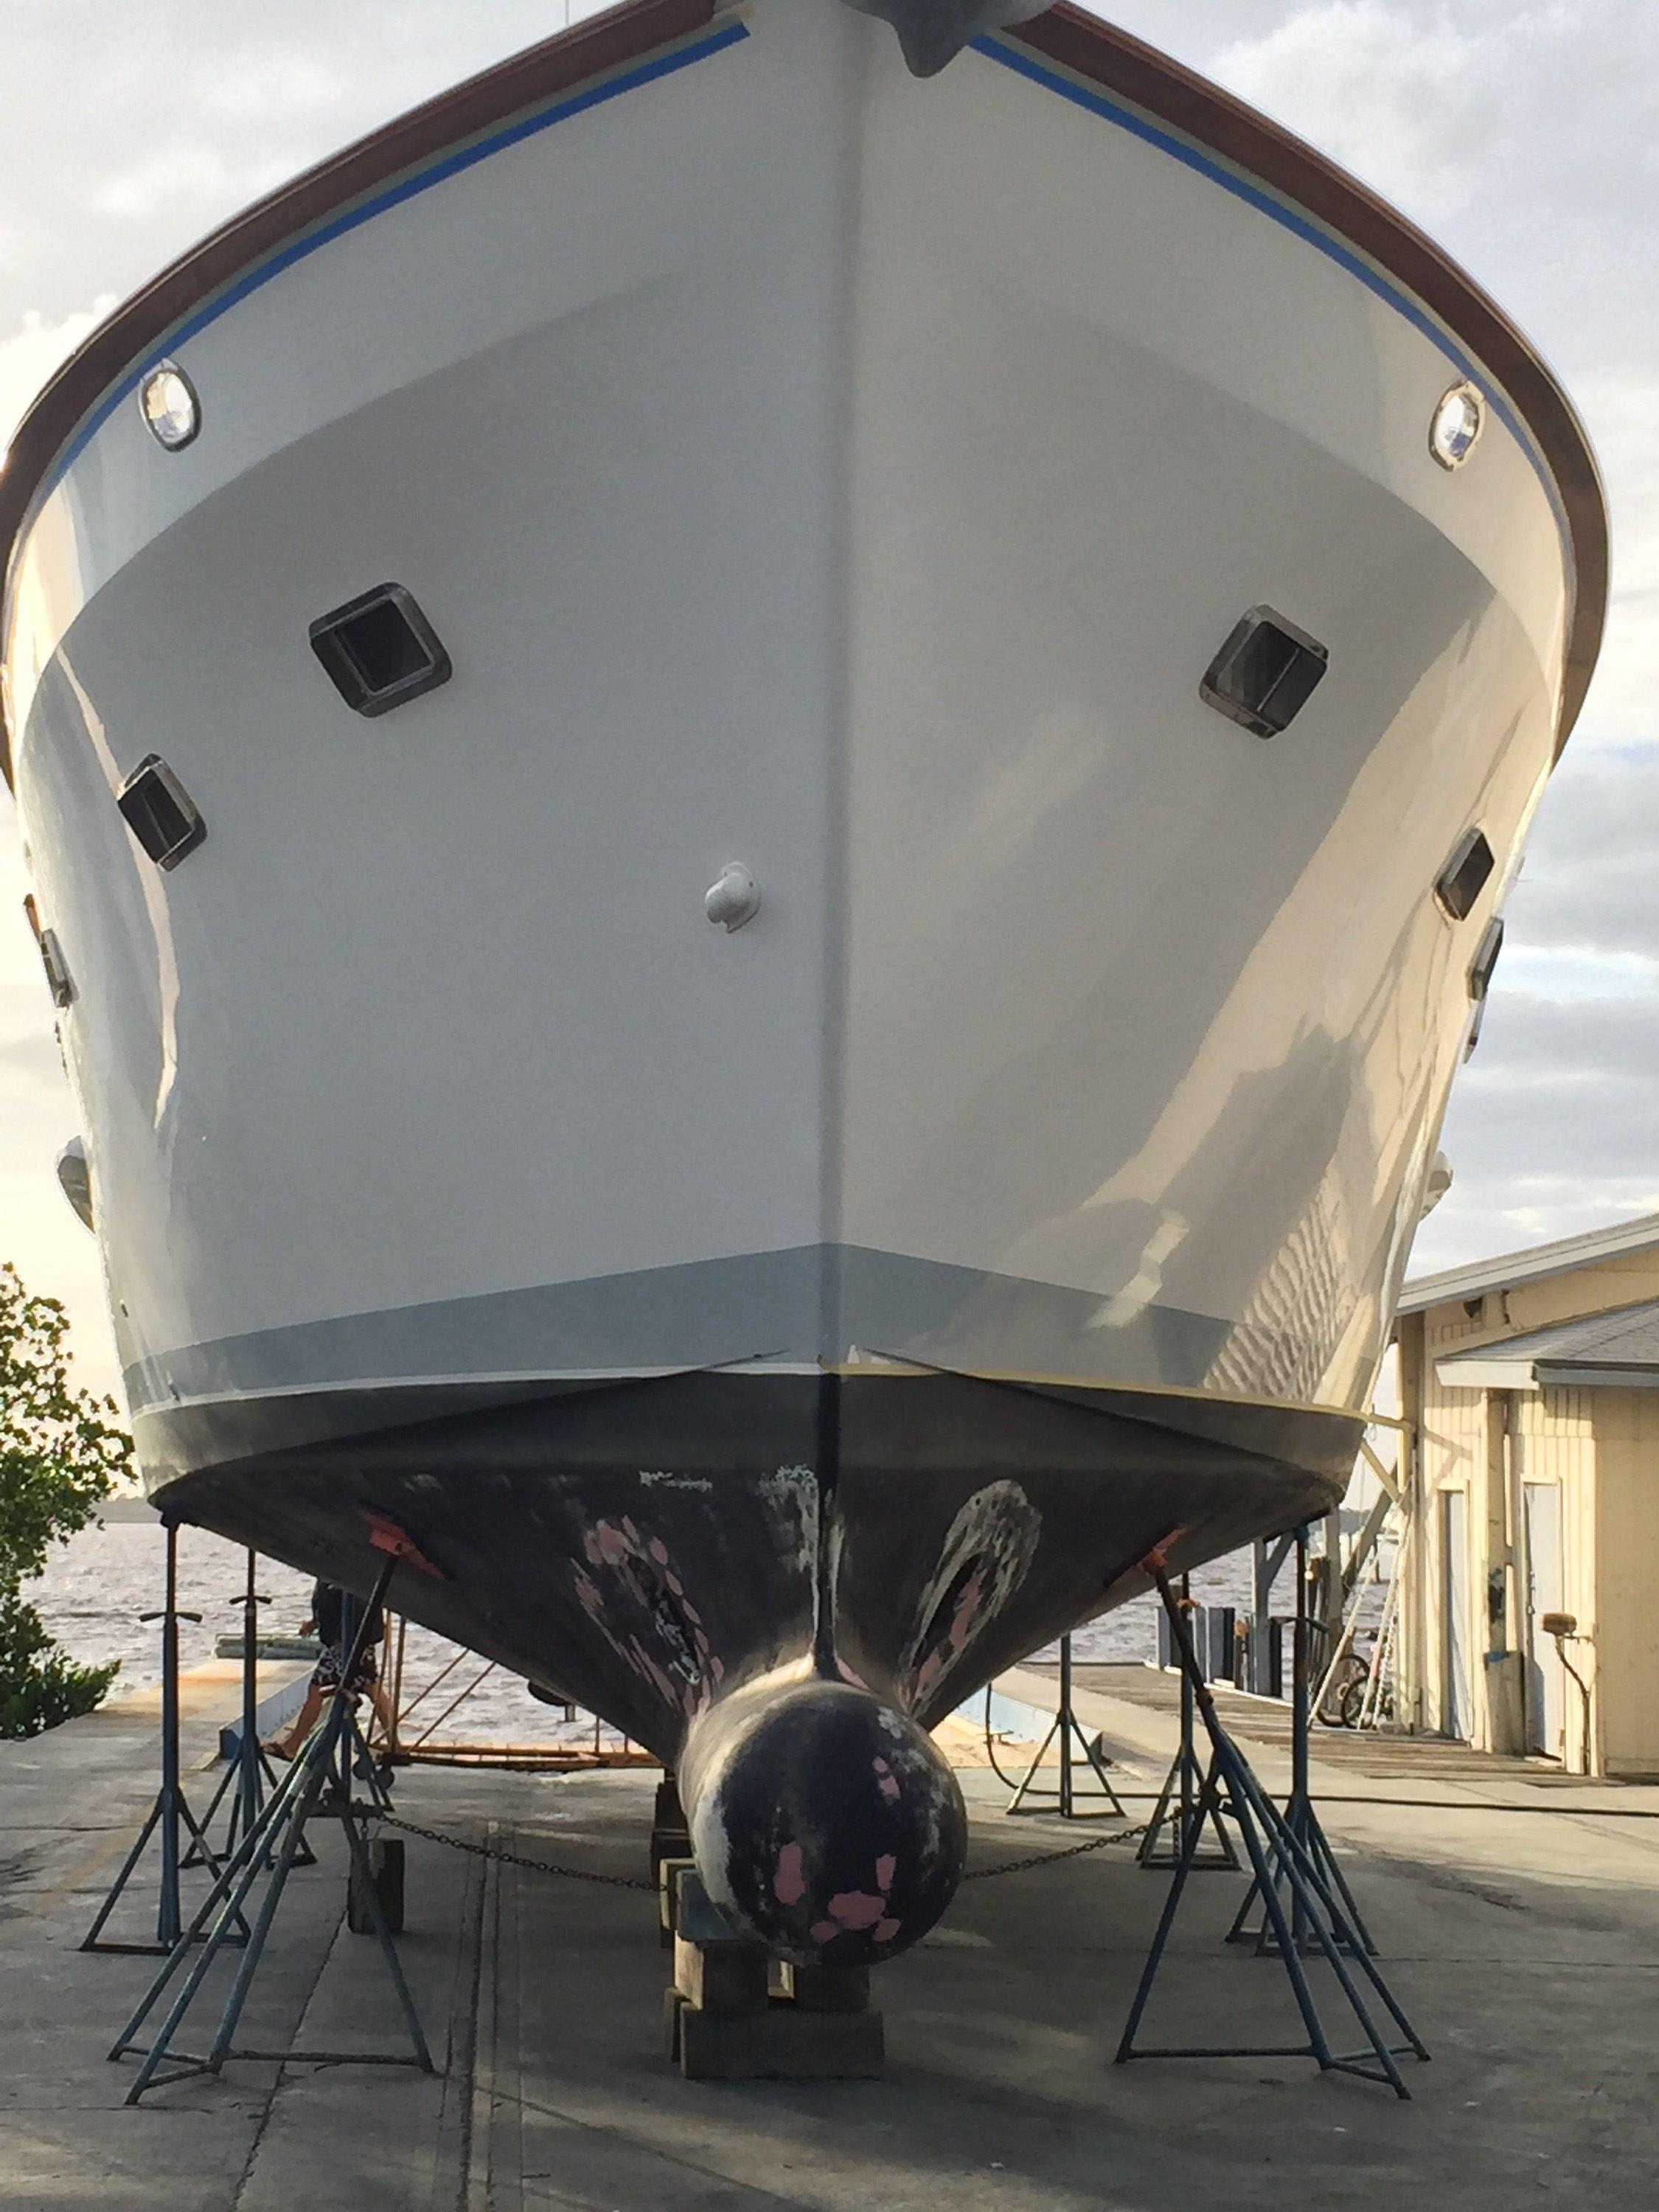 Bulbous Bow/hauled prior to painting (2016)